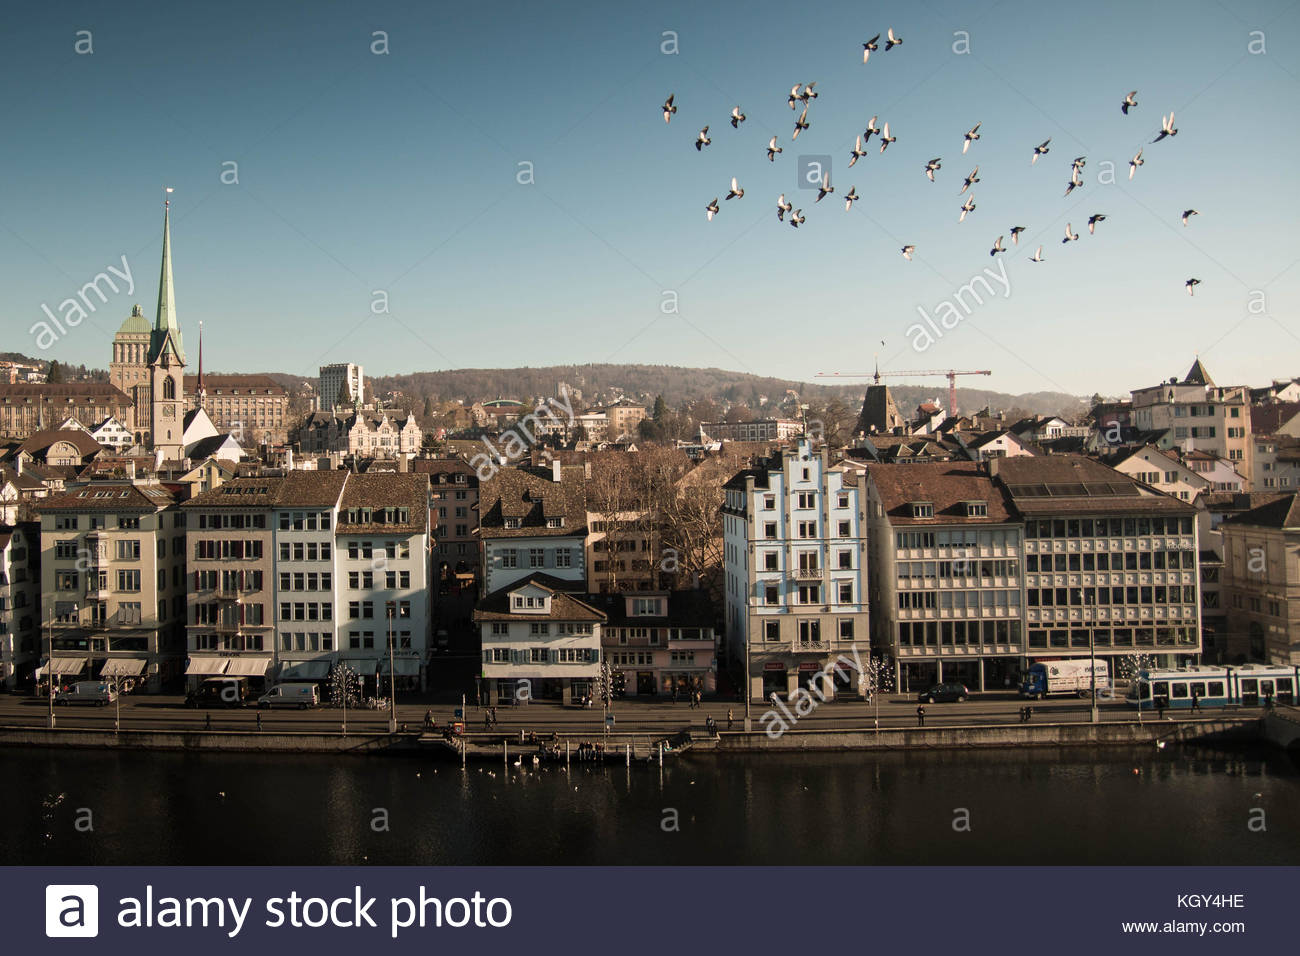 Zurich landscape with river Limmat and birds flying in a flock. - Stock Image